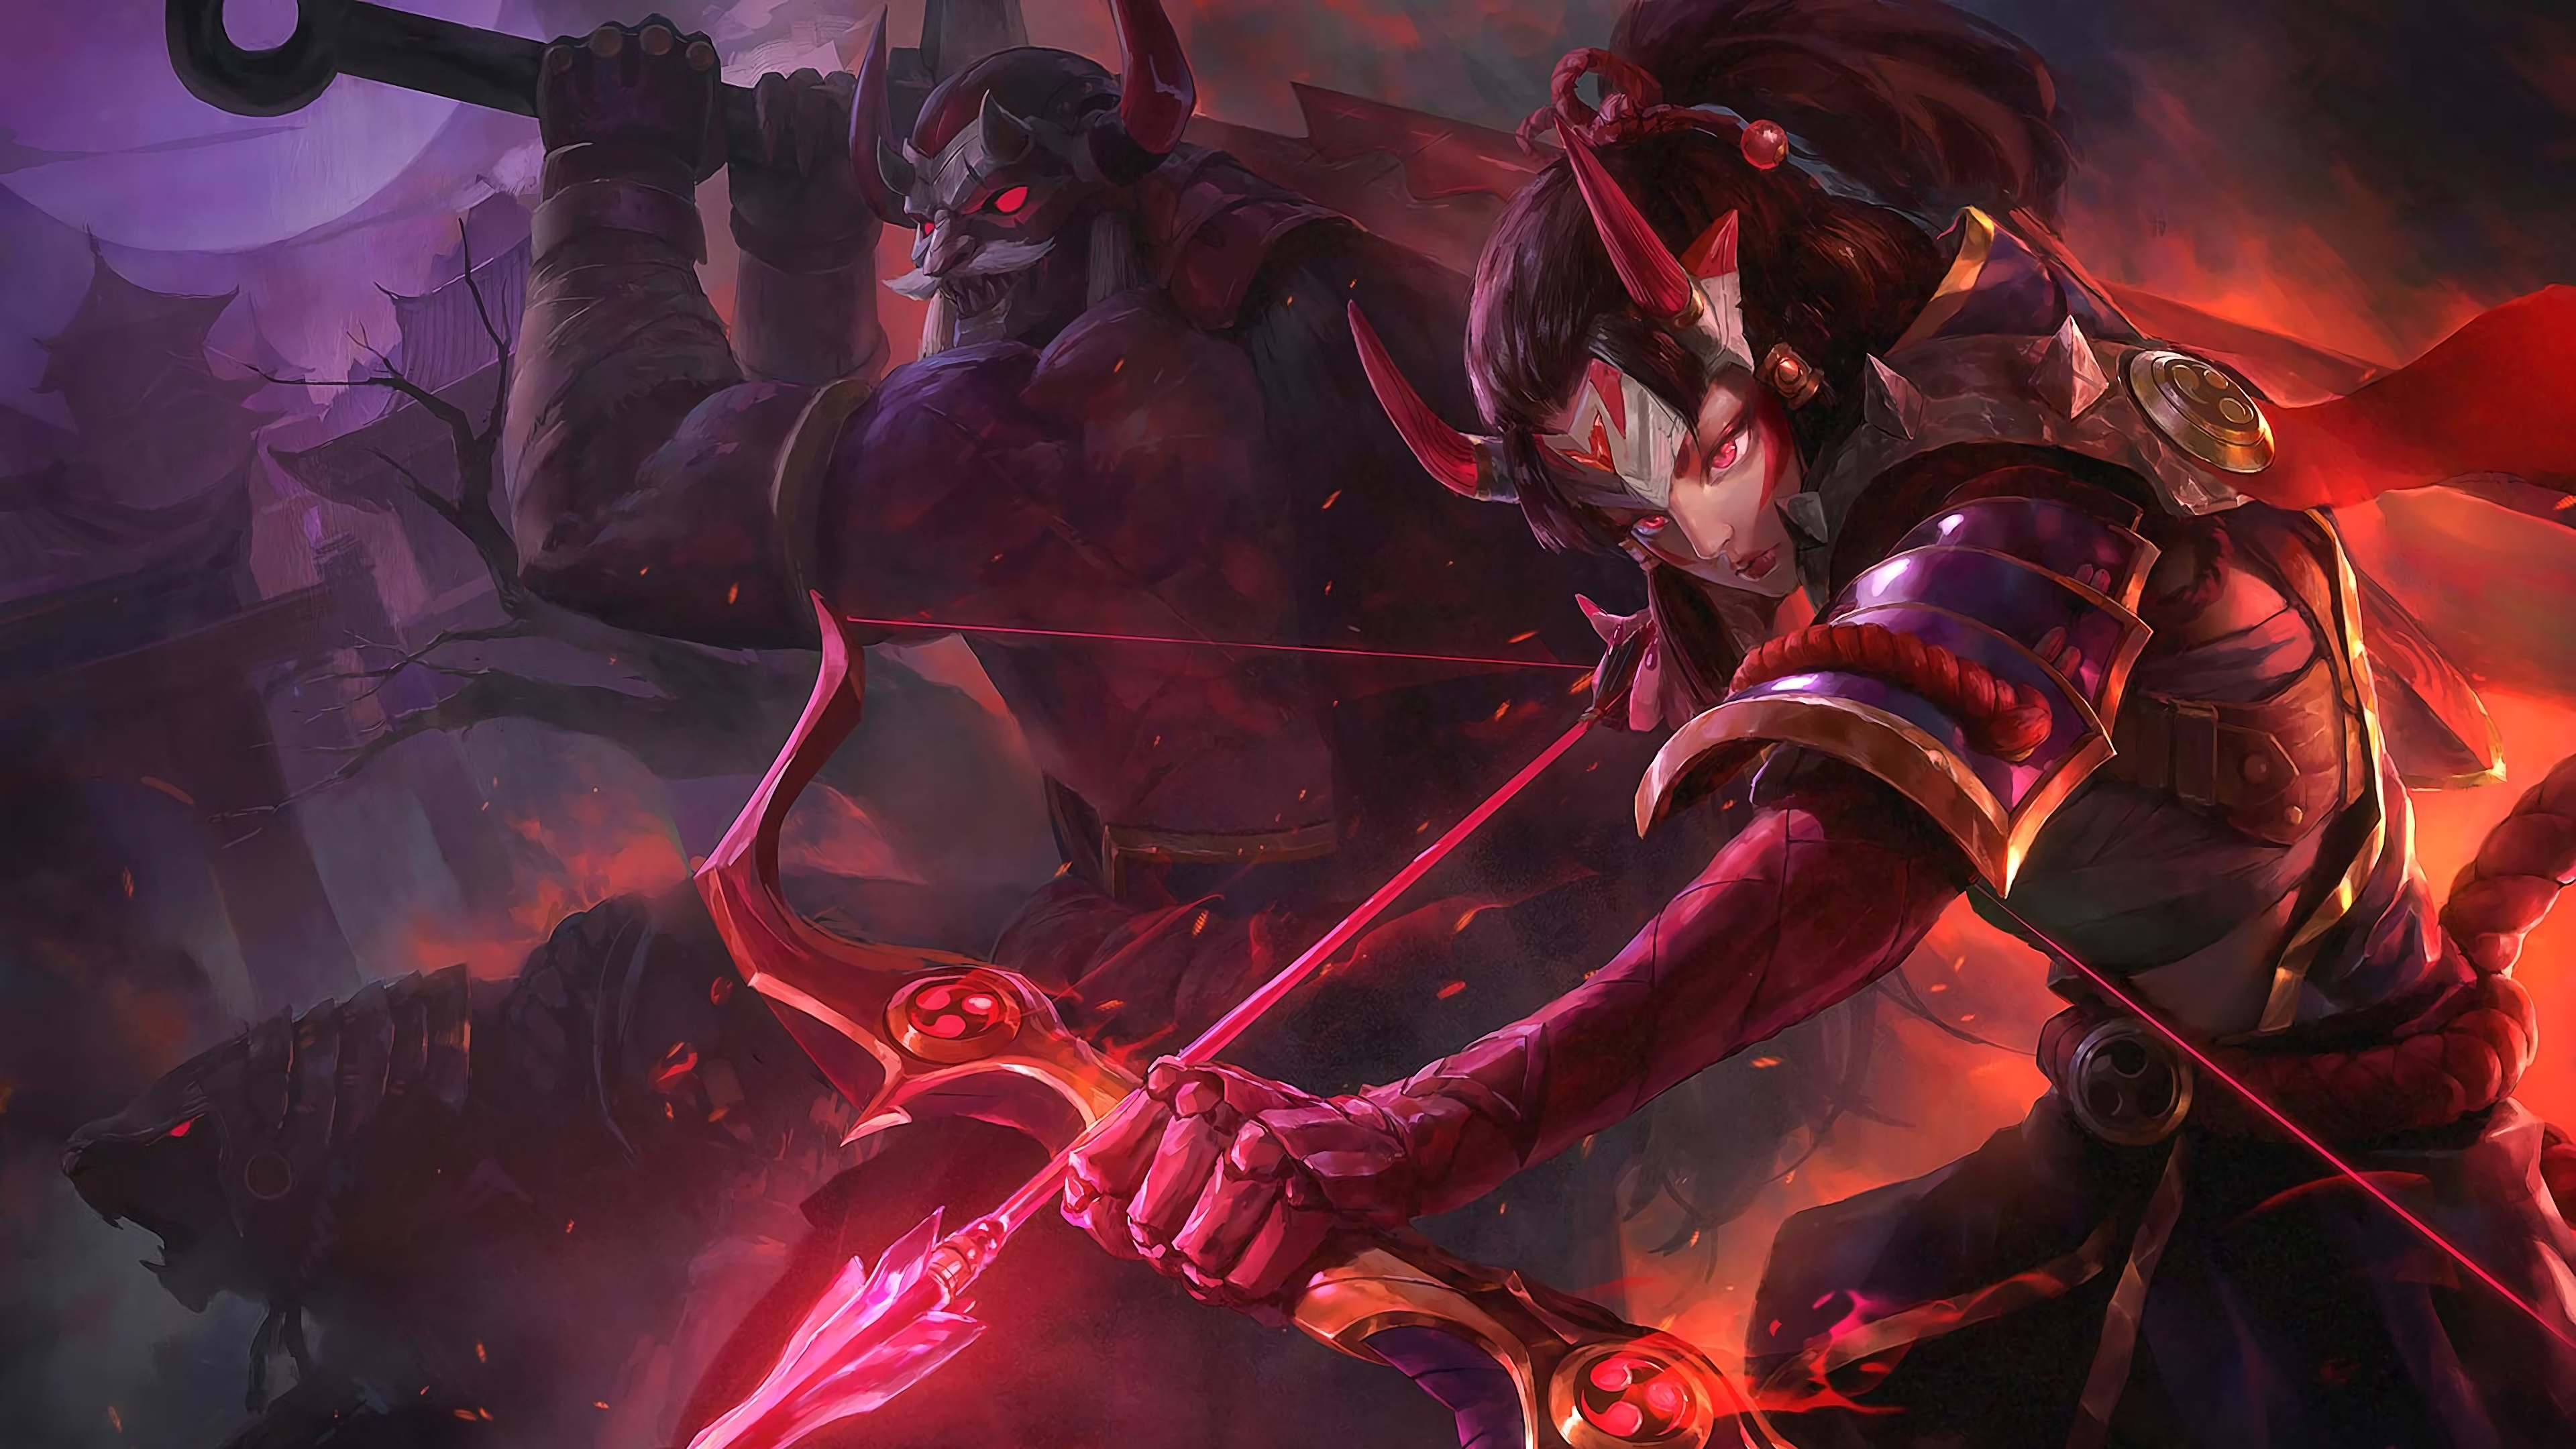 blood moon ashe and tryndamere lol league of legends lol 1574103013 - Blood Moon Ashe and  Tryndamere LoL League of Legends lol - Tryndamere, league of legends, Blood Moon - League of Legends, Ashe